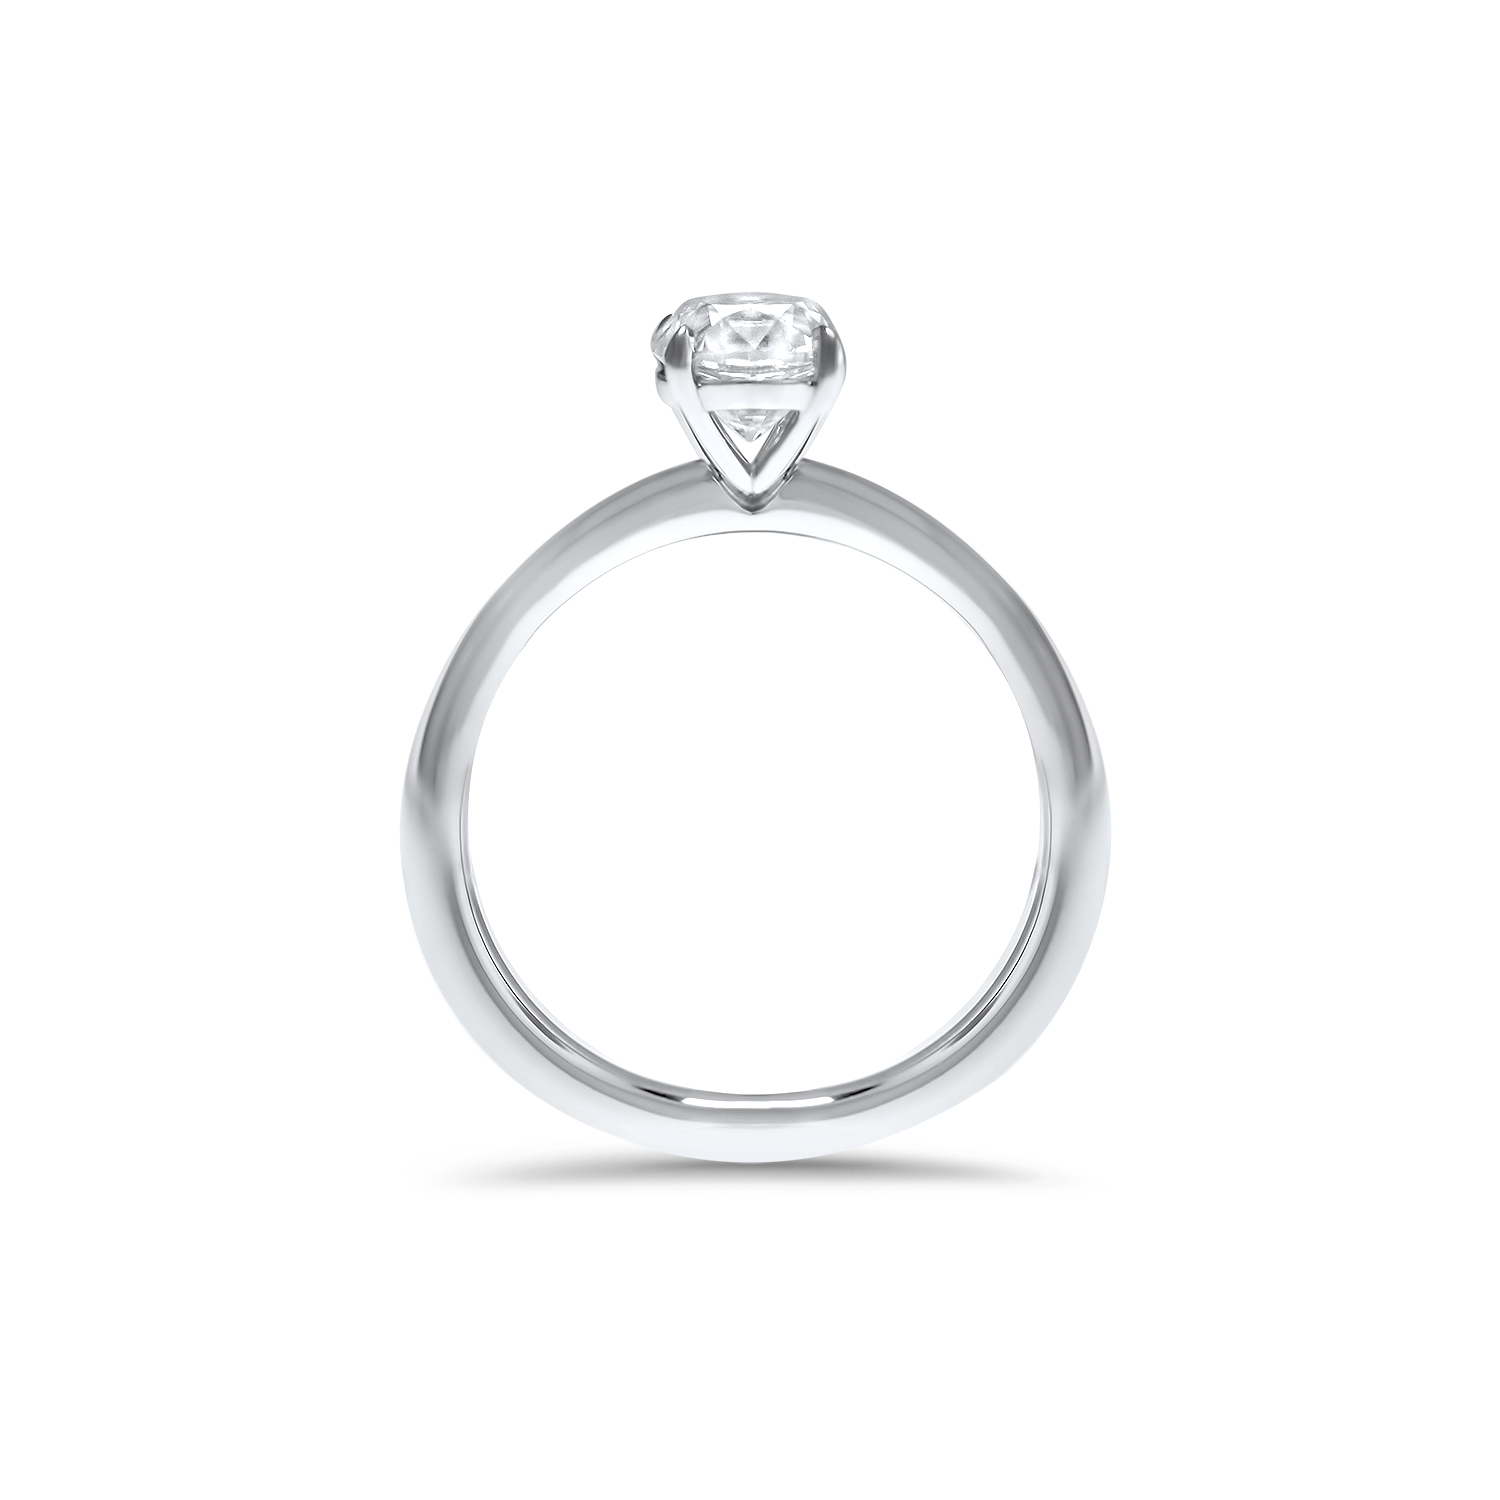 plain rings jewellery ic diamond melbourne xhh australia engagement band and wedding h pagespeed